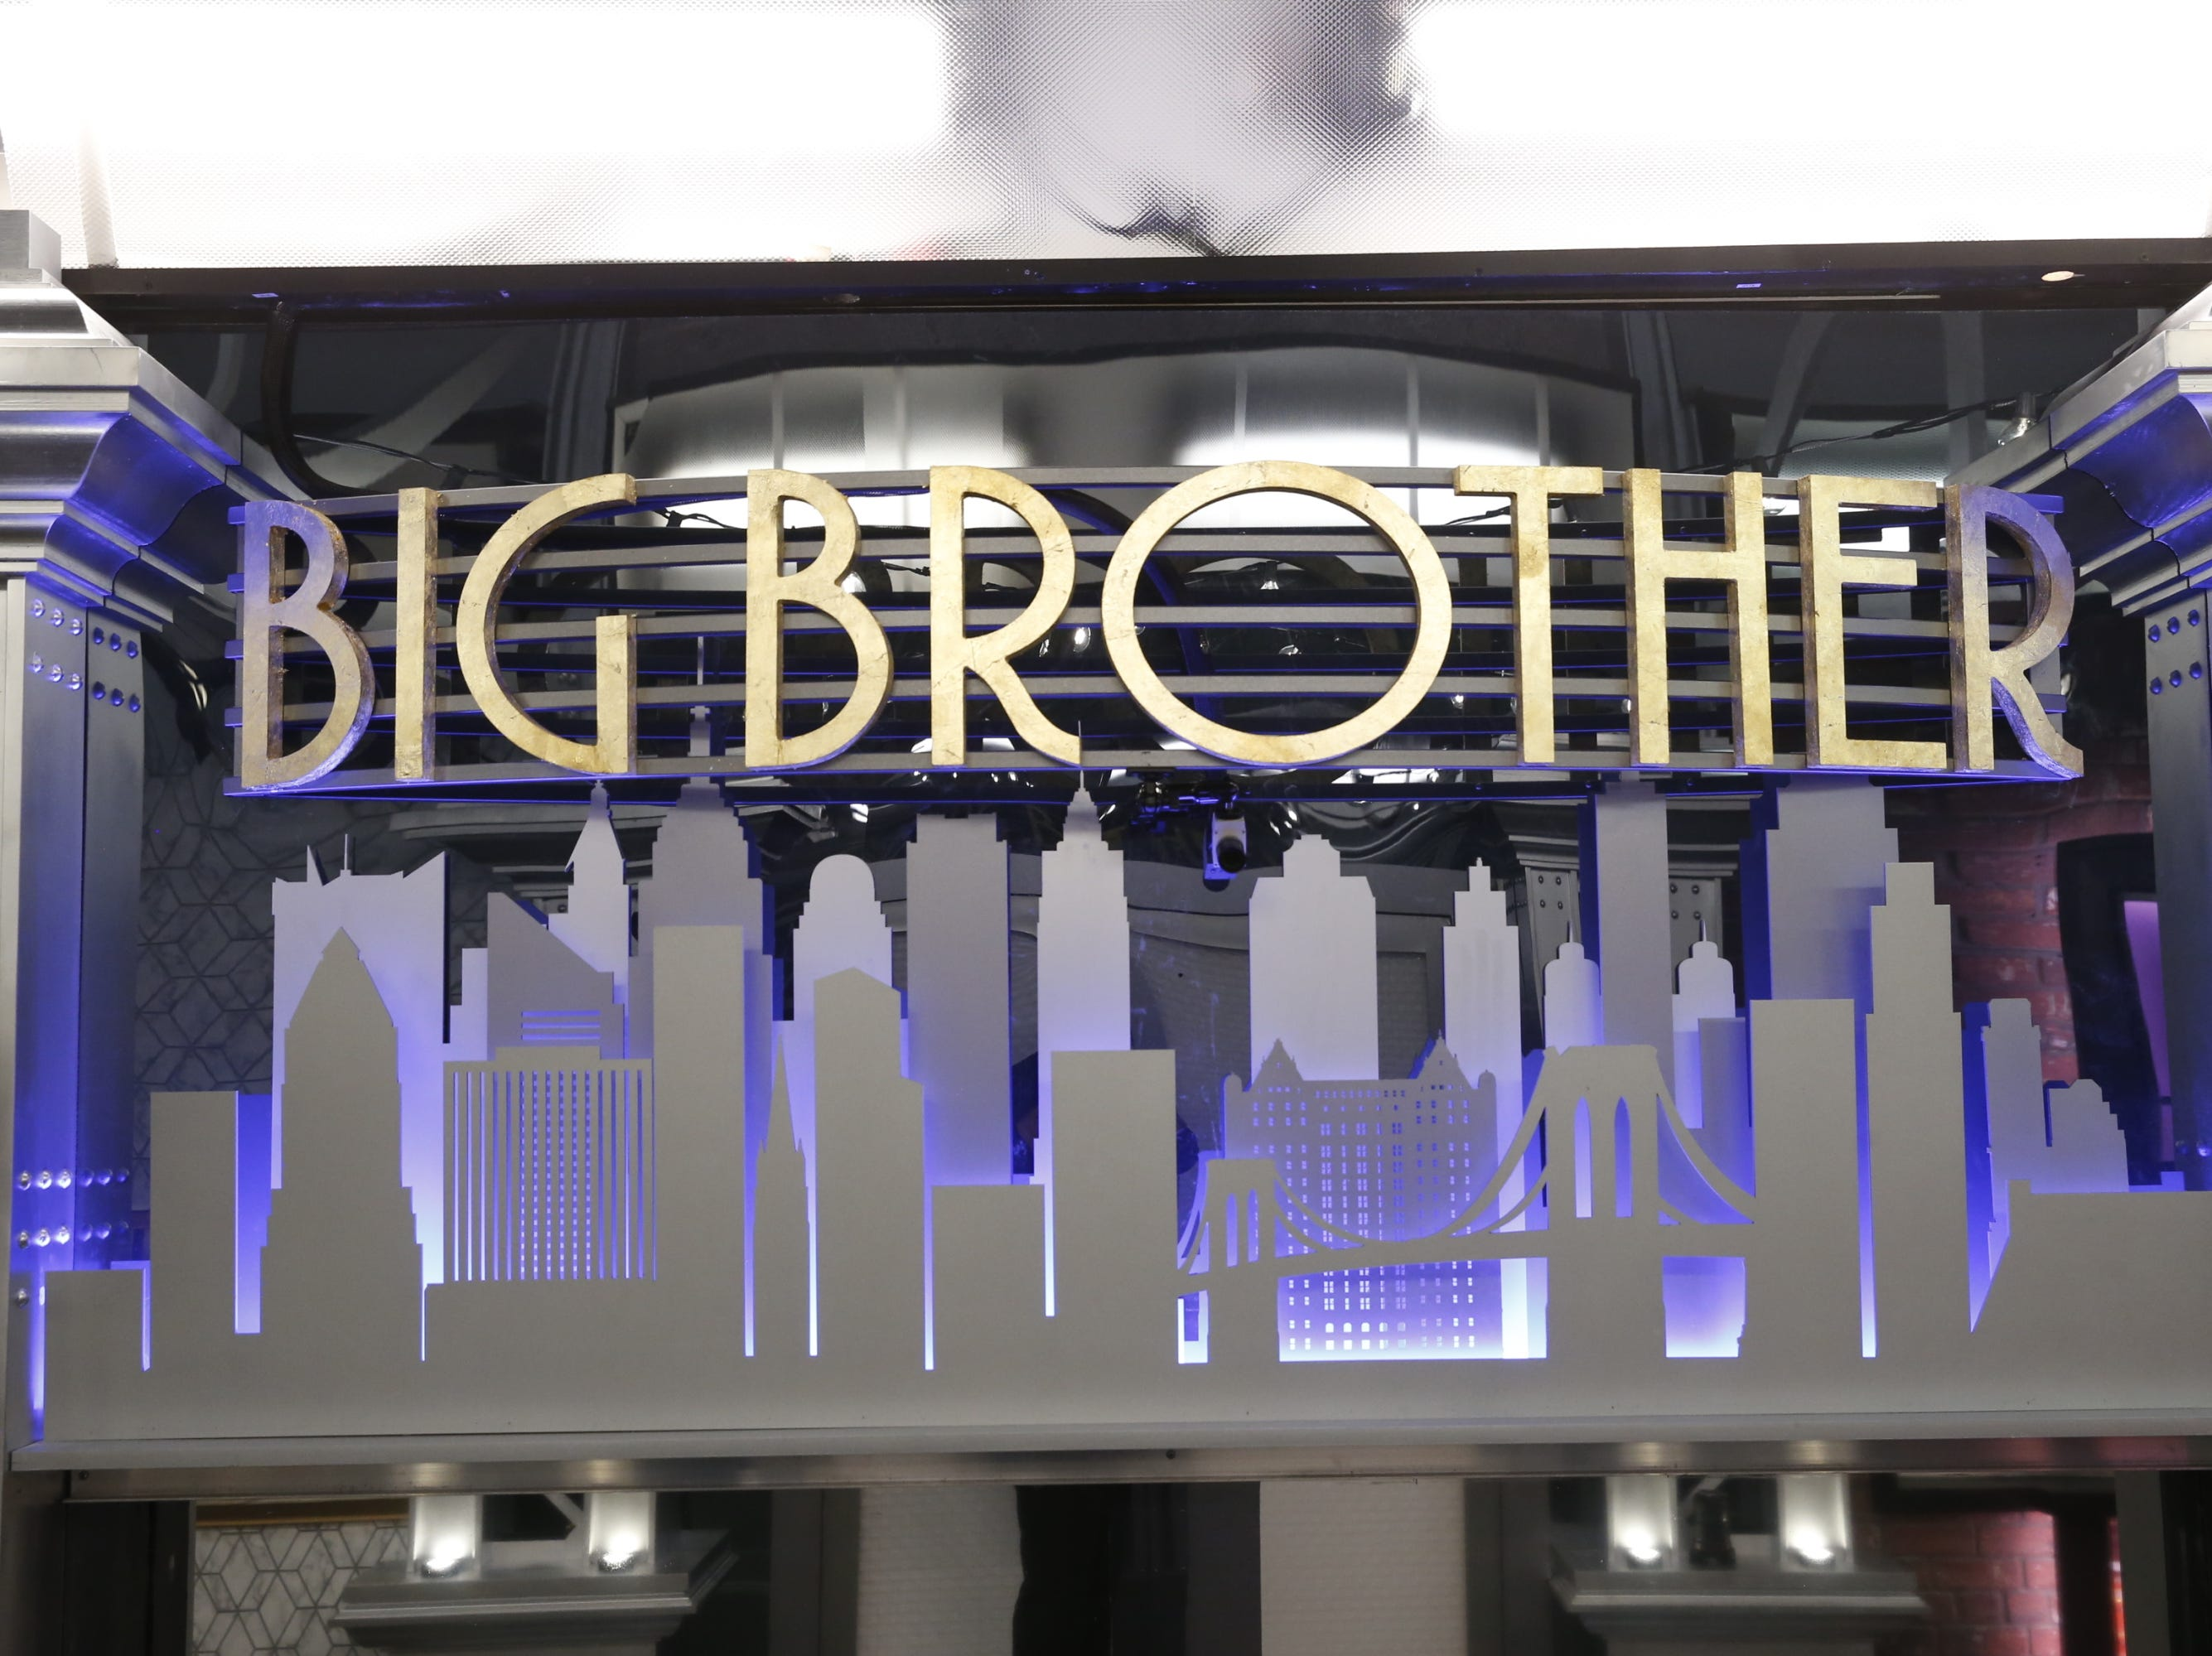 The House that Never Stops meets the City That Never Sleeps, as this seasonÕs Celebrity Big Brother House gets a Manhattan makeover! This season, the celebrity HouseGuests will be living all things NYC, but with a twist! ItÕs the Big Apple from the 1930Õs and 40Õs, updated with a modern flare. BIG BROTHER: CELEBRITY EDITION launches with a two-night premiere event Monday, Jan. 21 (8:00-9:00 PM, ET/PT) and Tuesday, Jan. 22 (8:00-9:00 PM, ET/PT) on the CBS Television Network.    Television Network.  Photo: Monty Brinton/CBS ©2018 CBS Broadcasting, Inc. All Rights Reserved